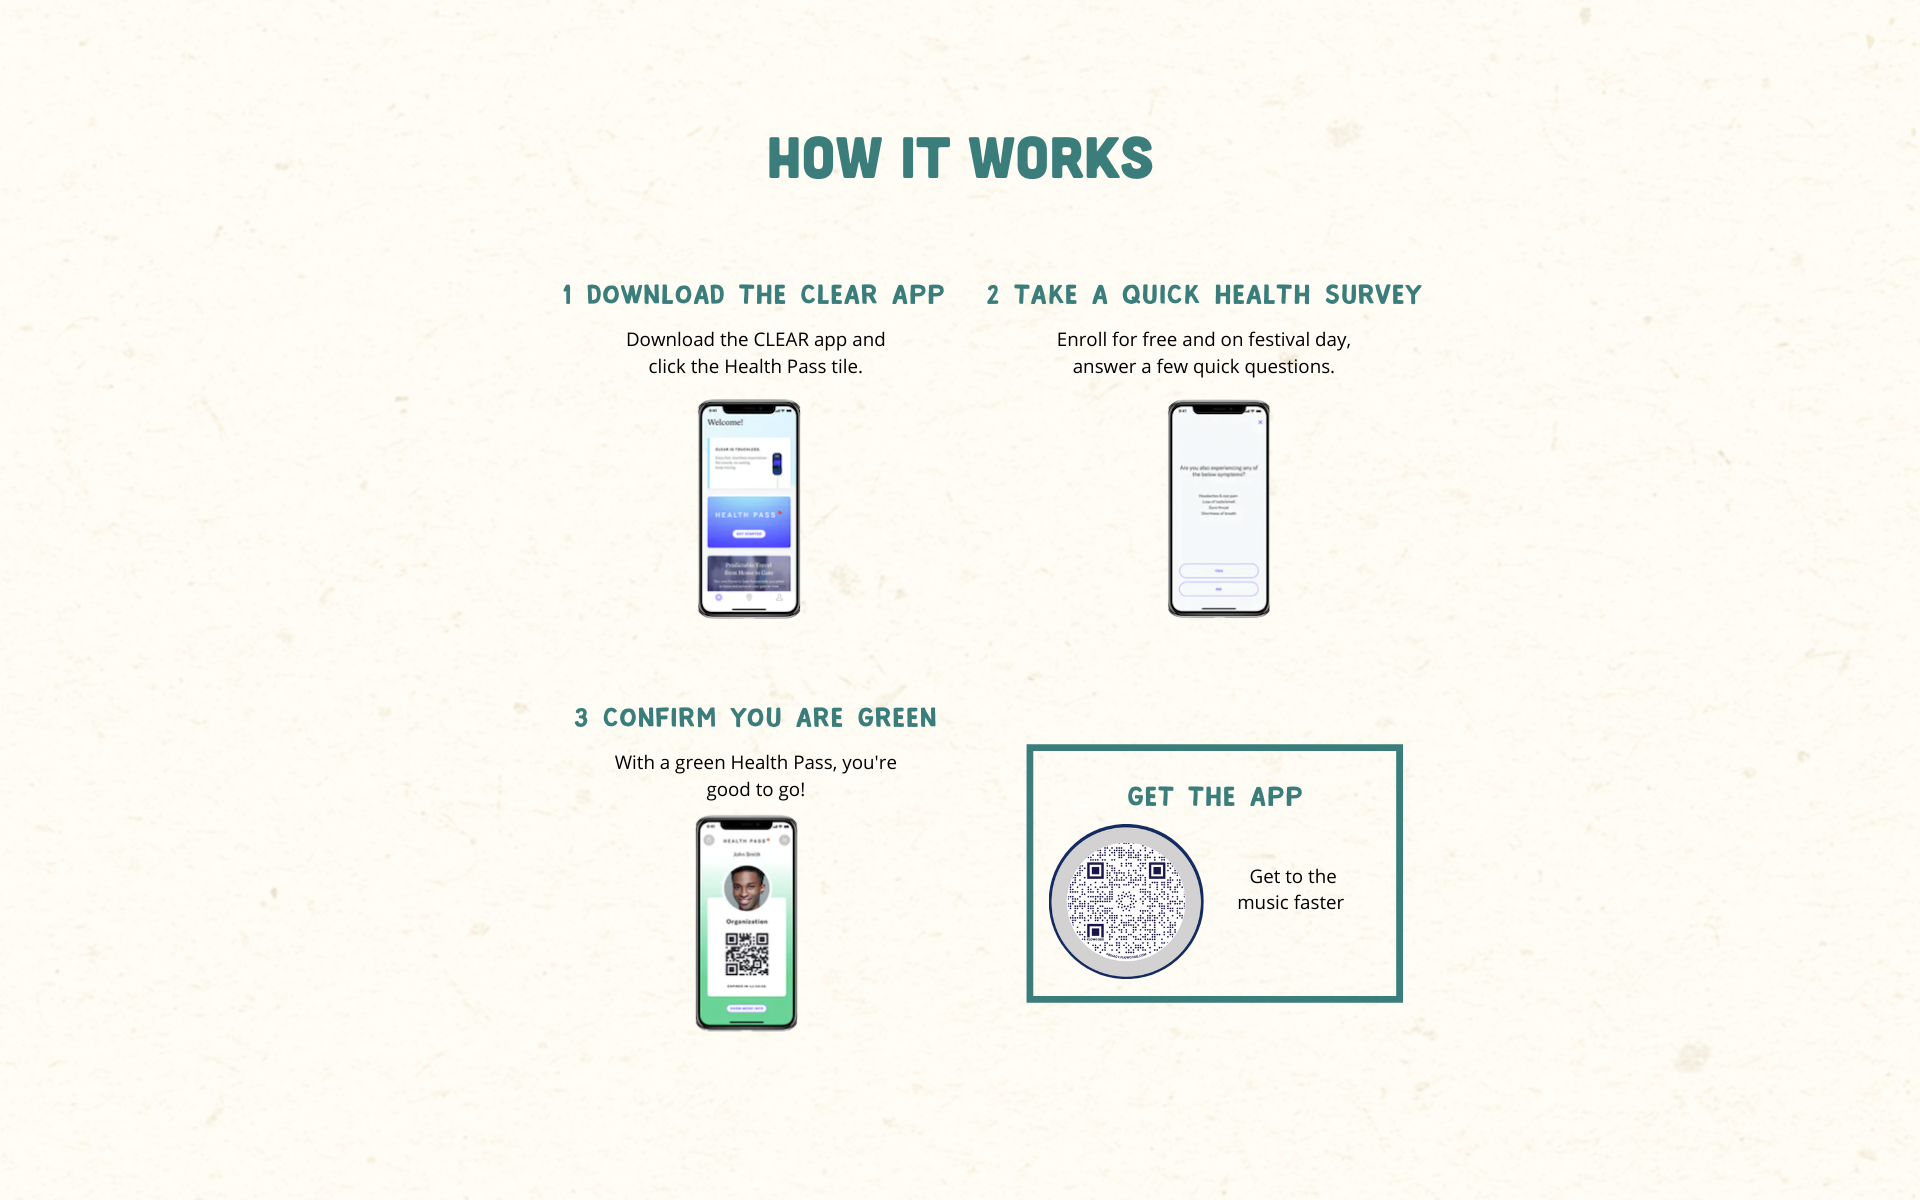 Smartphones show step by step process